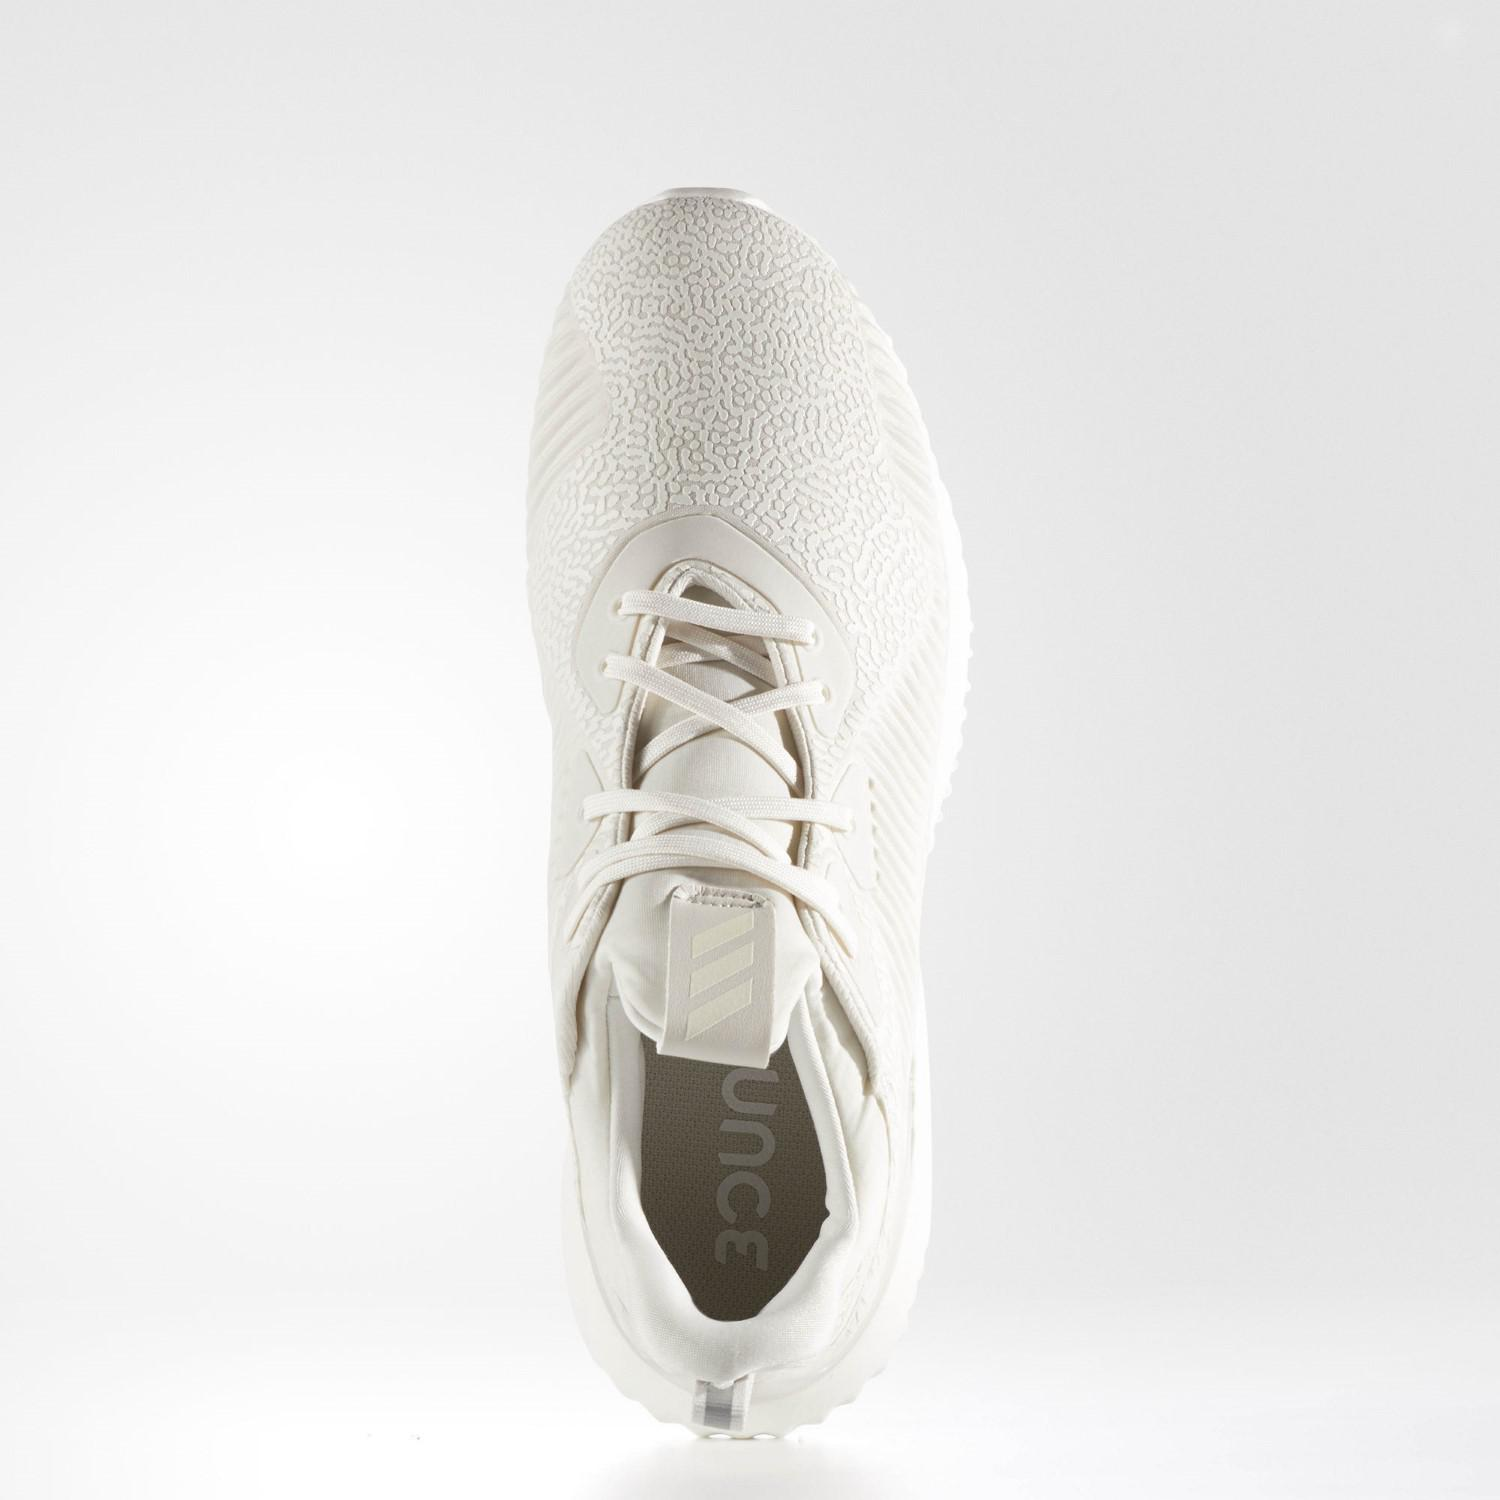 online retailer 5ecd8 ec8fb Lyst - Adidas Alphabounce Reflective Hpc Ams Shoes in White